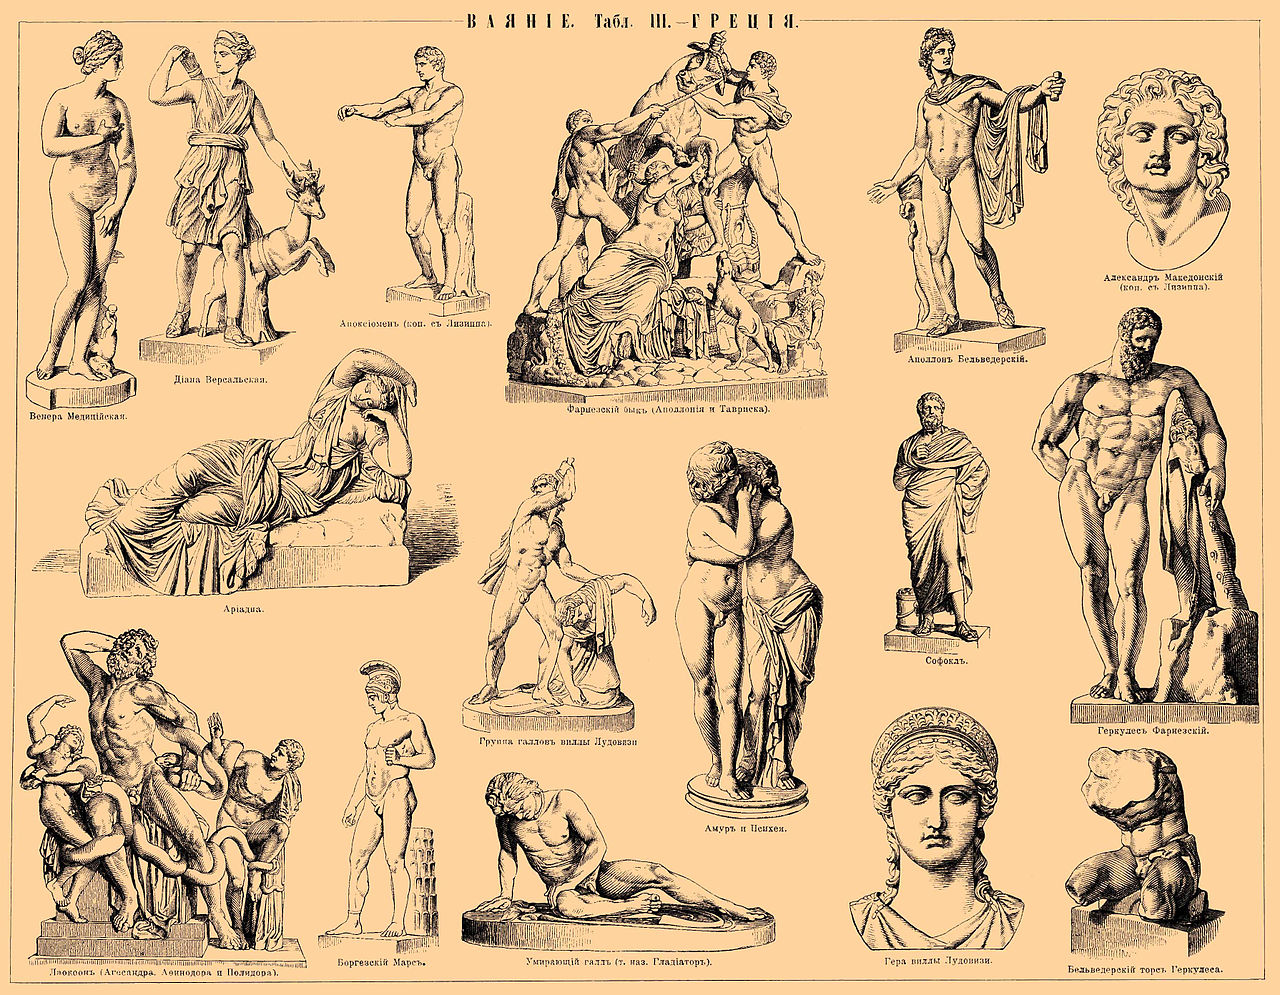 Vintage Human Statues Encyclopedia Illustration Retro Poster Canvas Painting DIY Wall Paper Posters Home Decor Gift